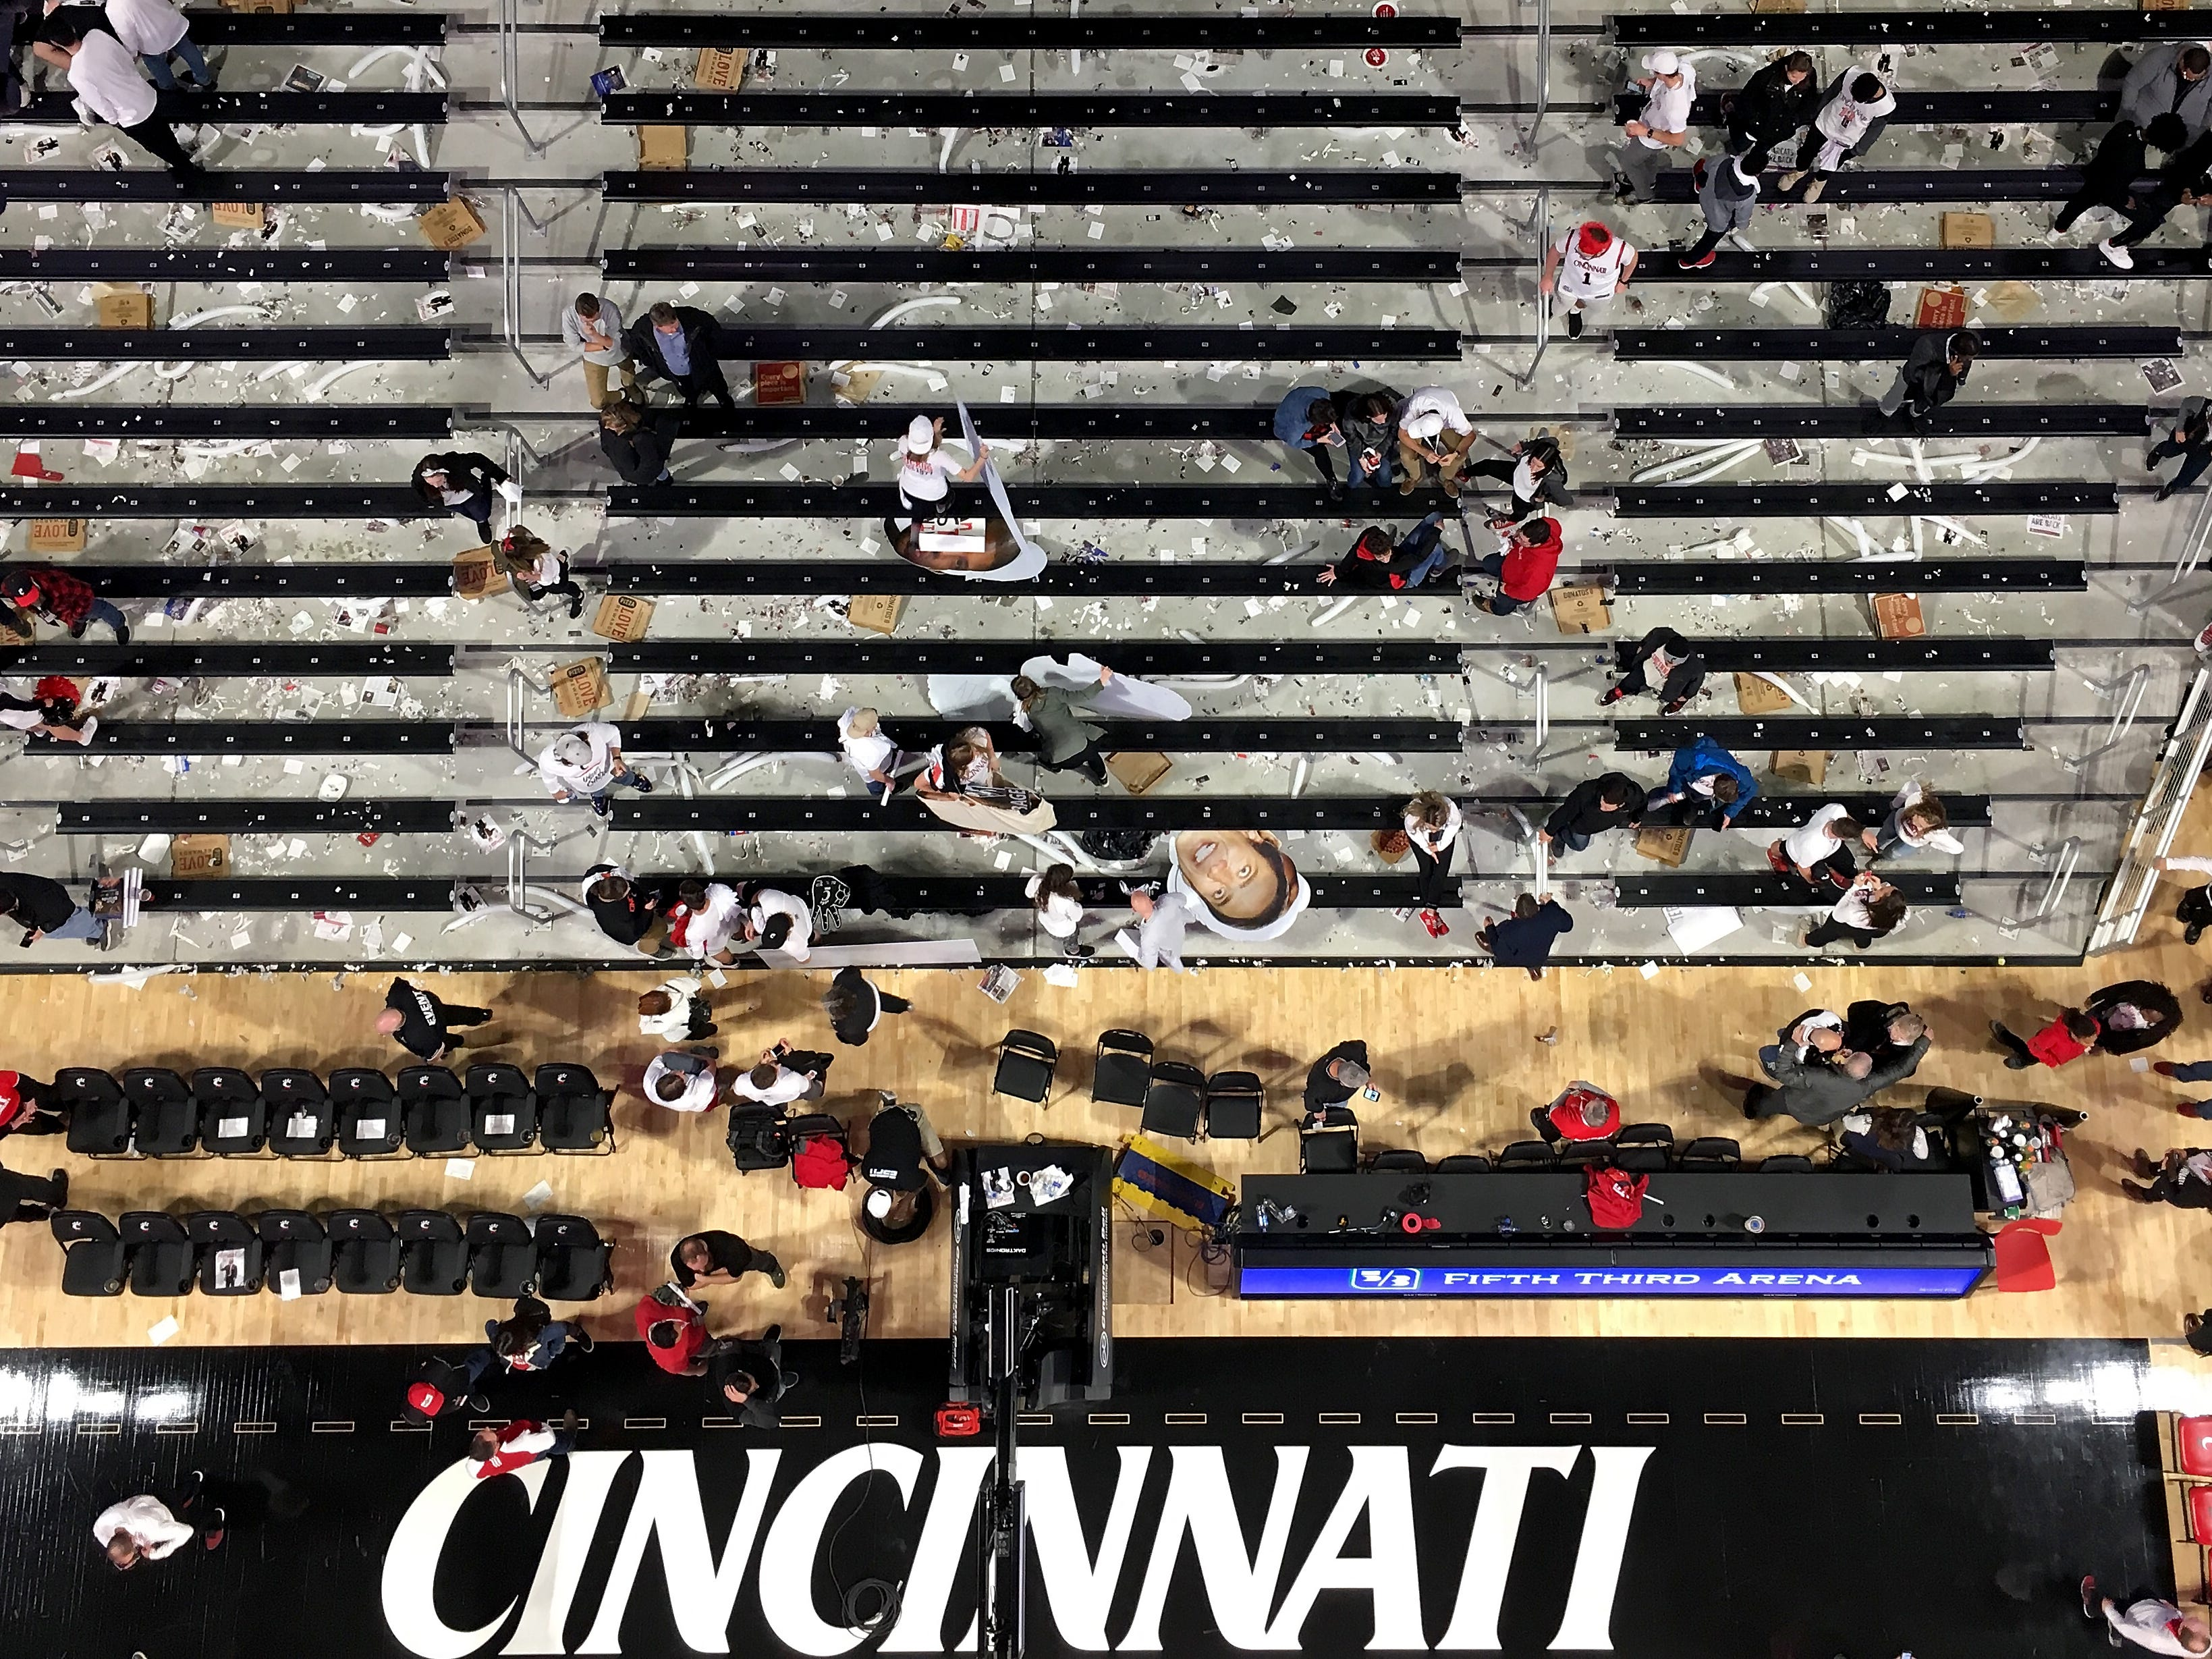 The Bearcats student section clears out after the NCAA basketball game between the Cincinnati Bearcats and the Ohio State Buckeyes at Fifth Third Arena in Cincinnati on Wednesday, Nov. 7, 2018. The Bearcats opened the season 0-1 with a 64-56 loss the Ohio State.